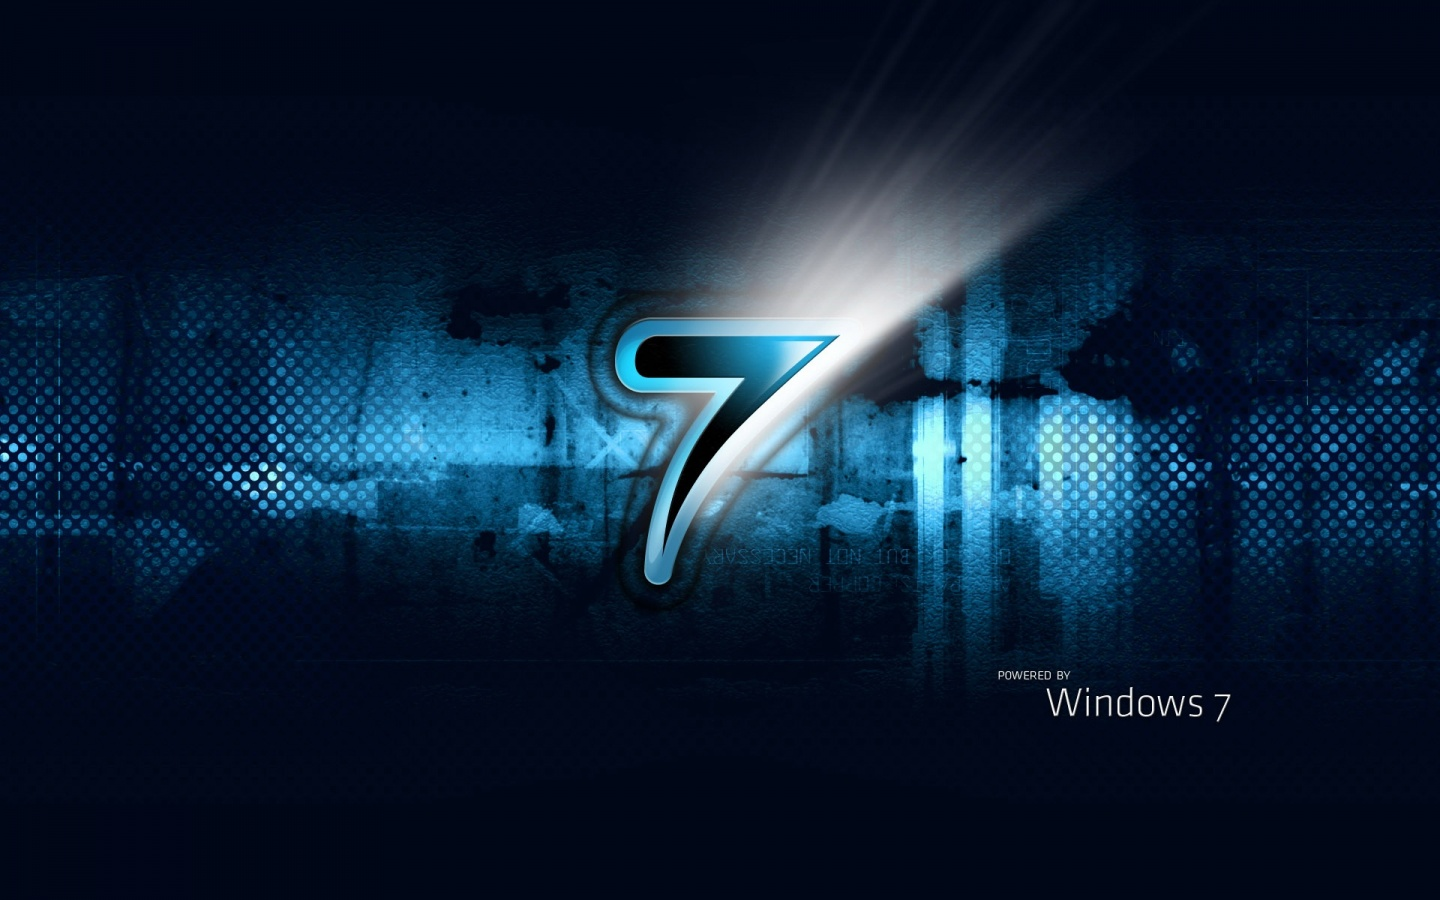 wallpaper: hd desktop wallpaper windows 7